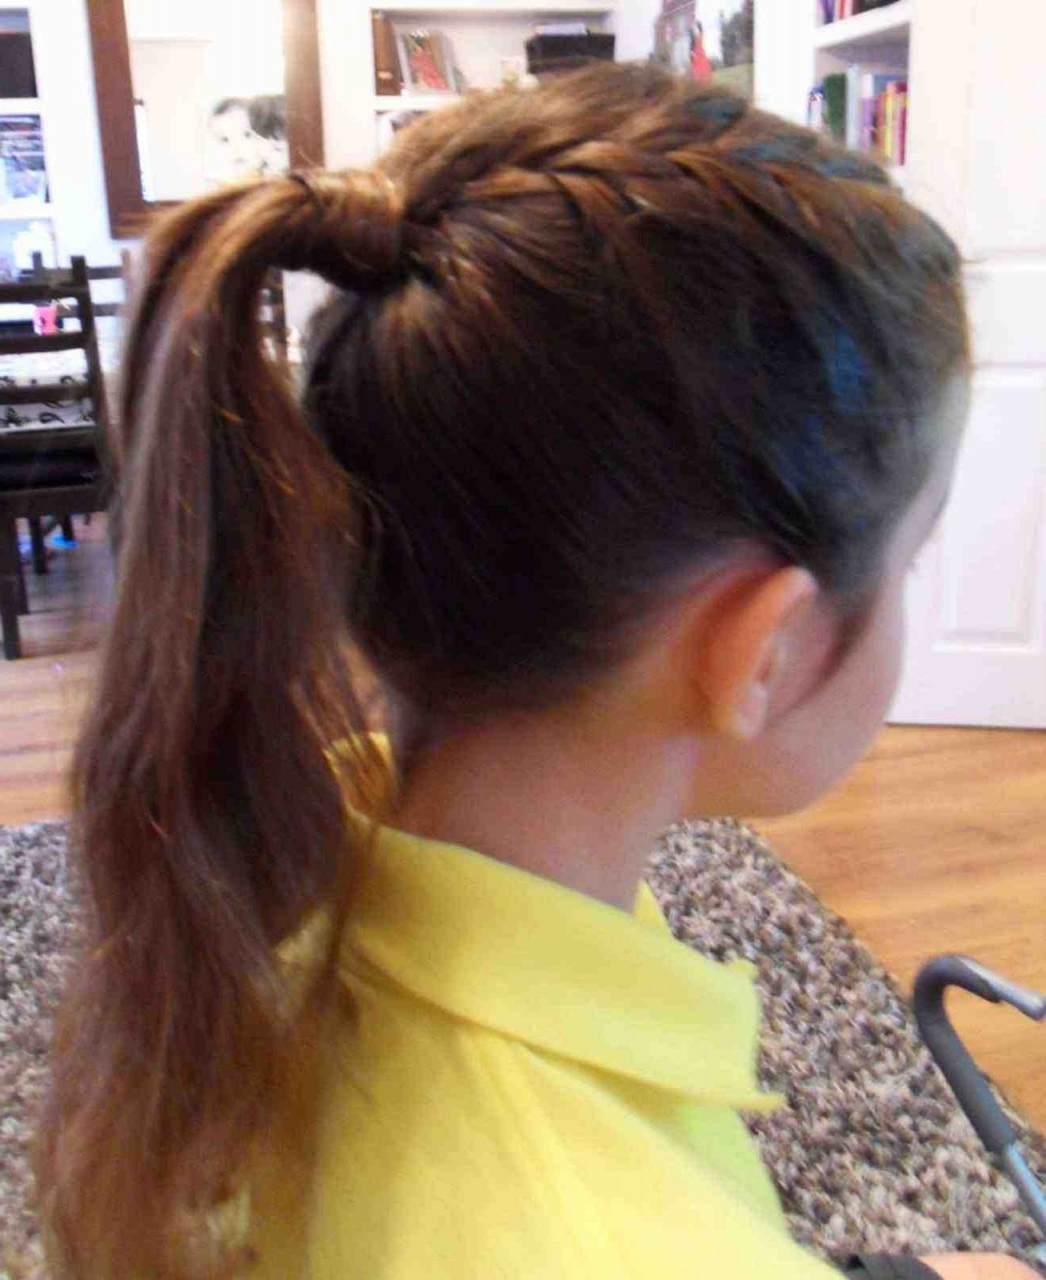 Popular French Braids Pony Hairstyles For Braid Hairstyles Short Hair Inspirational Ponytail Hairstyles For (View 17 of 20)